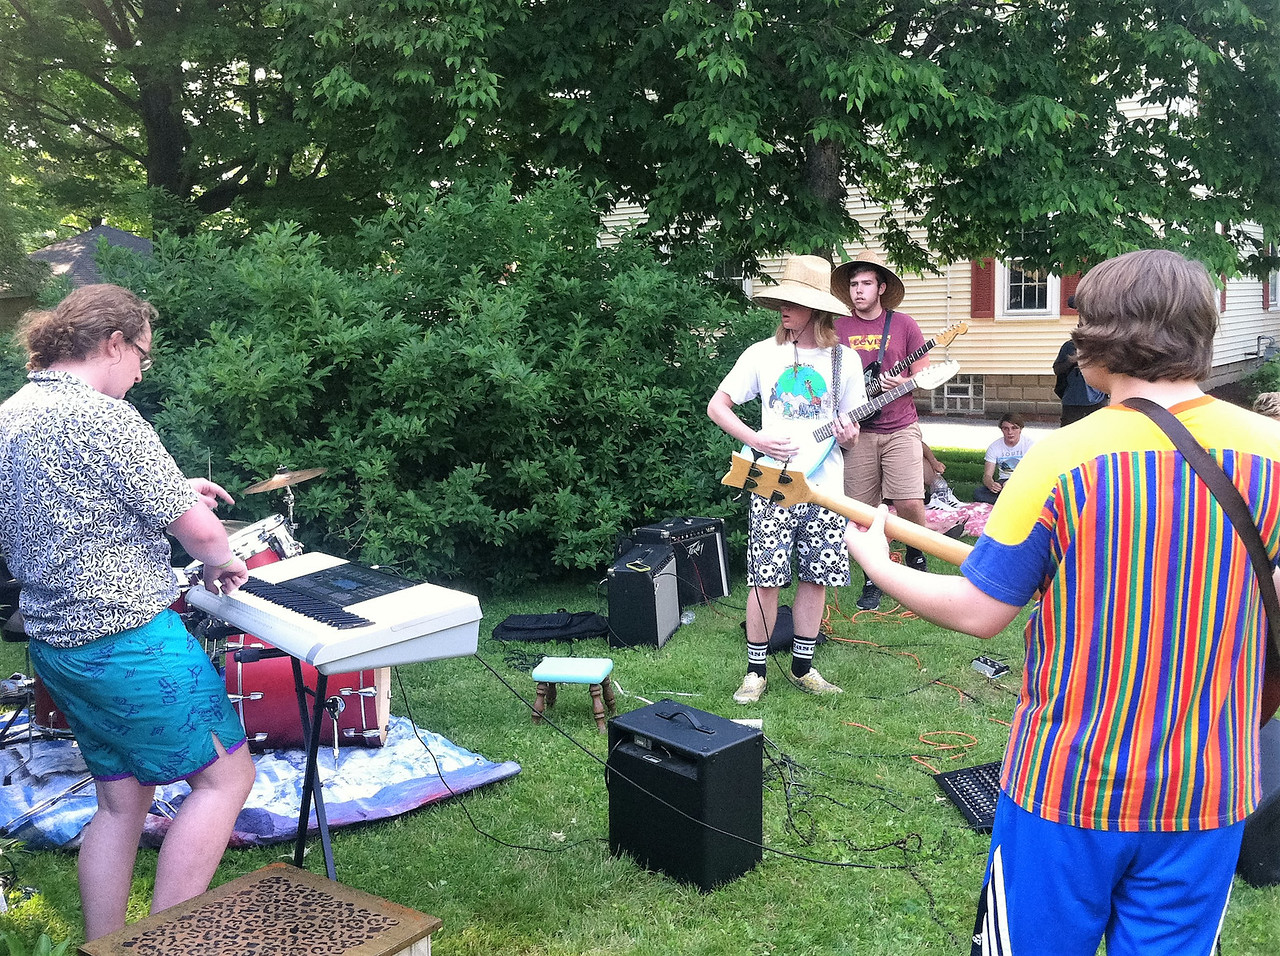 BOB SANDRICK / GAZETTE  Parking Lot Seagulls, a younger band, took part in Rockin' the Court on Saturday.